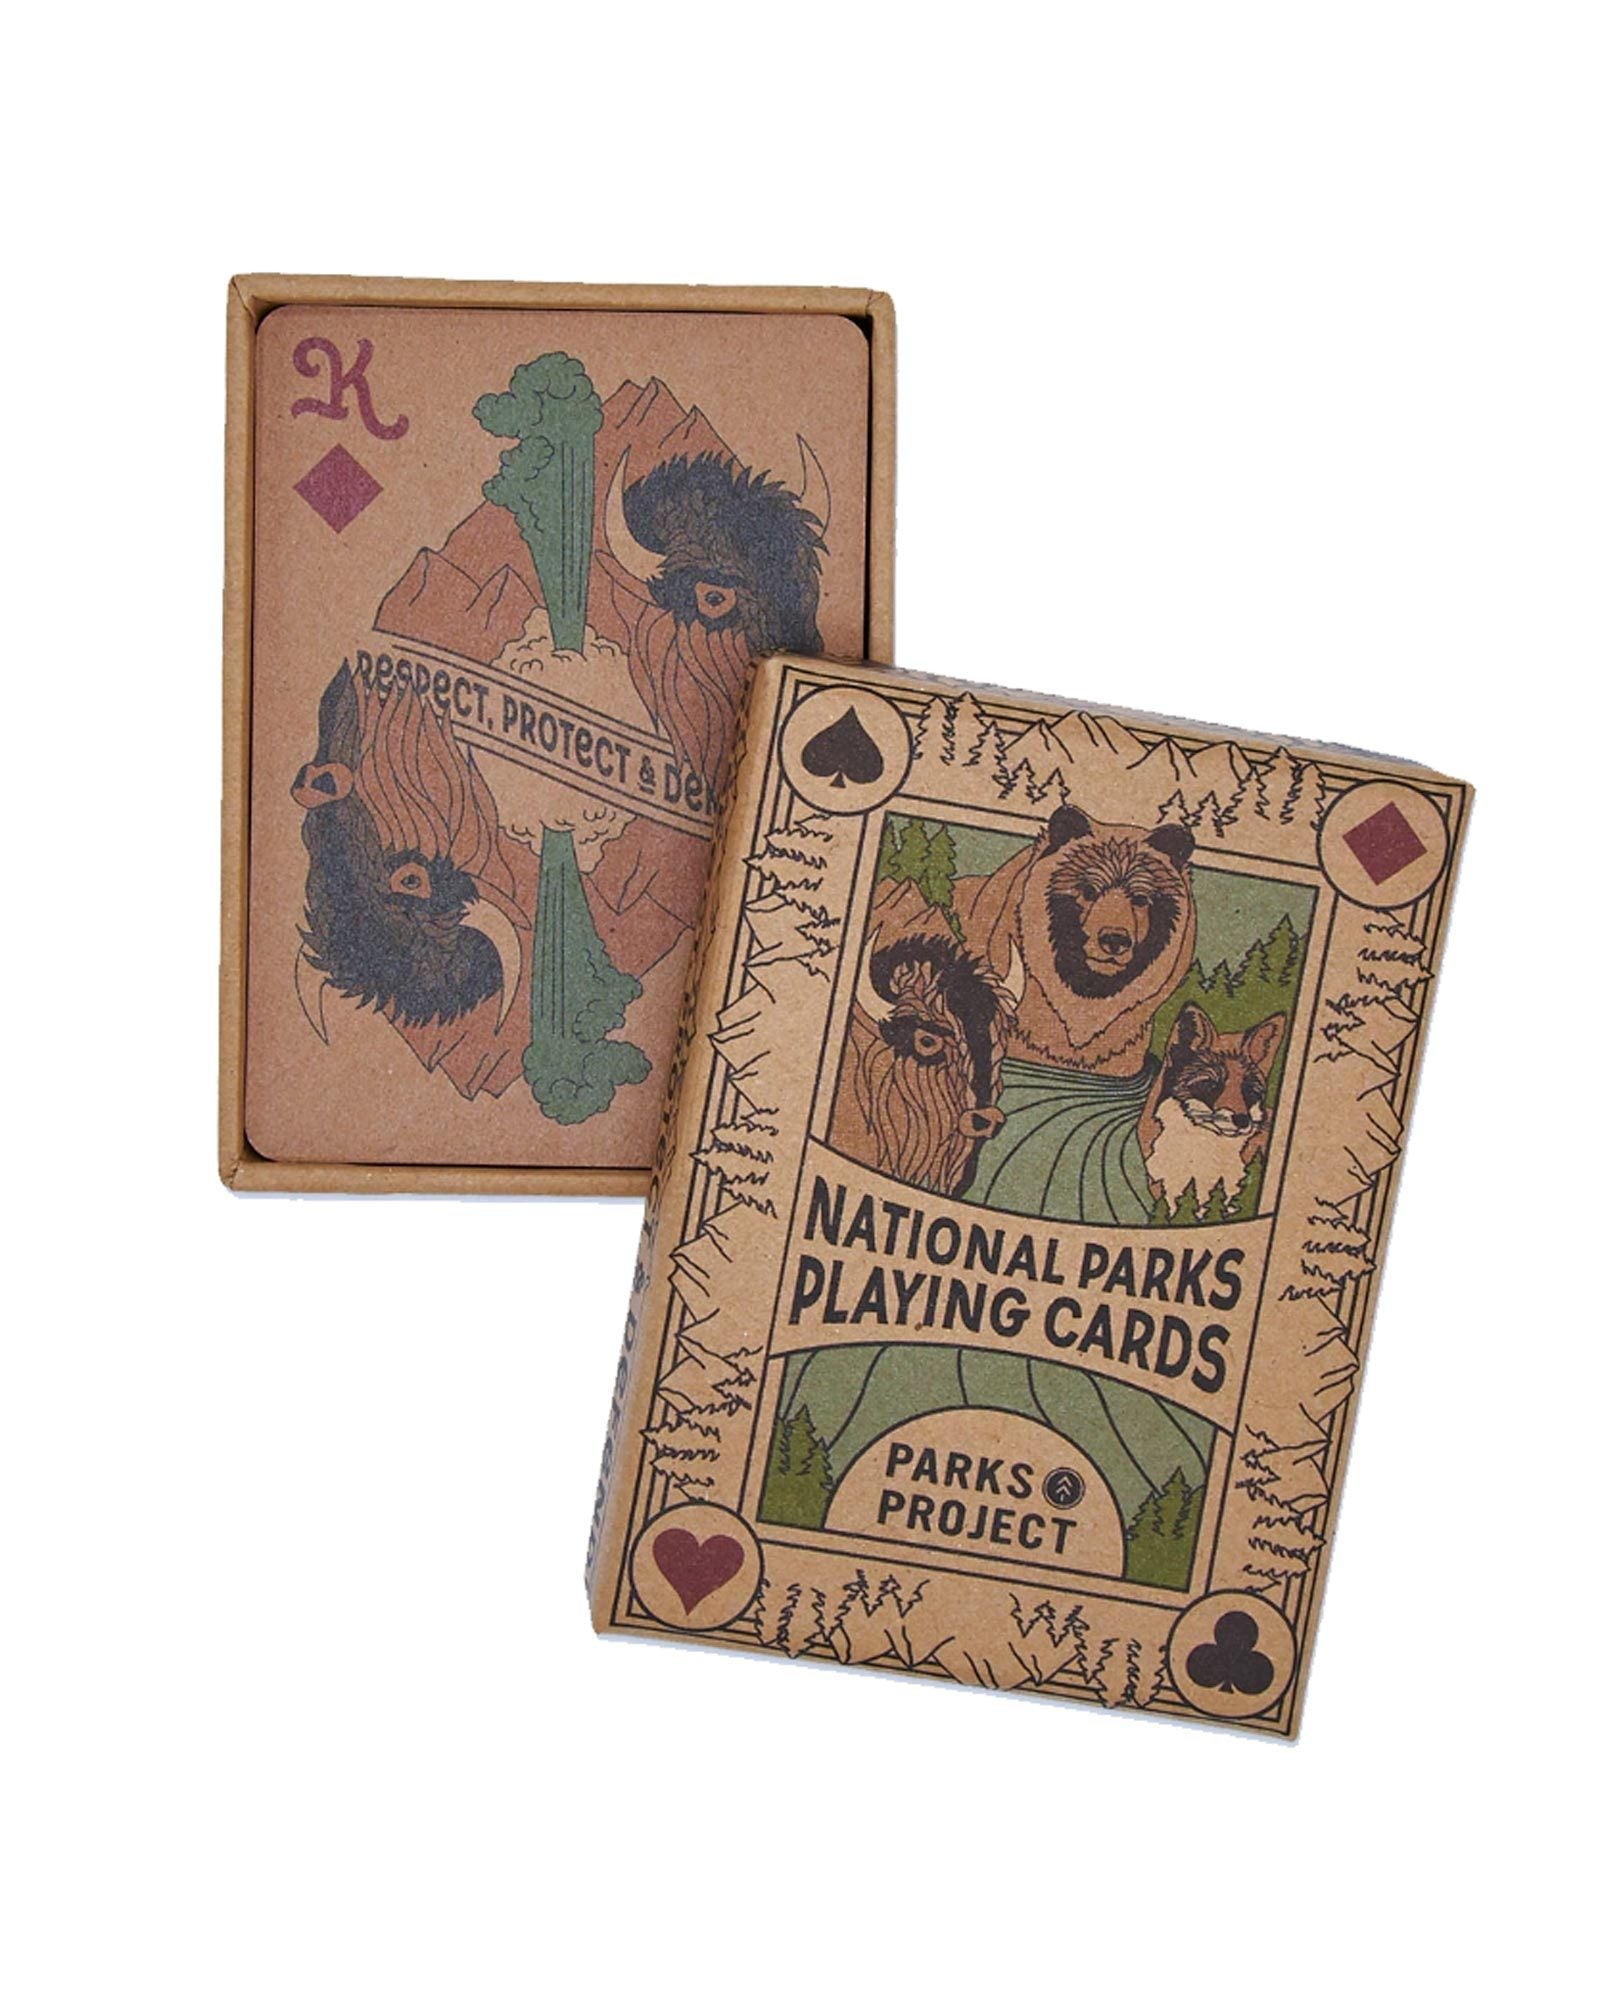 National Park Wildlife Playing Cards | Parks Project | National Park Playing Cards